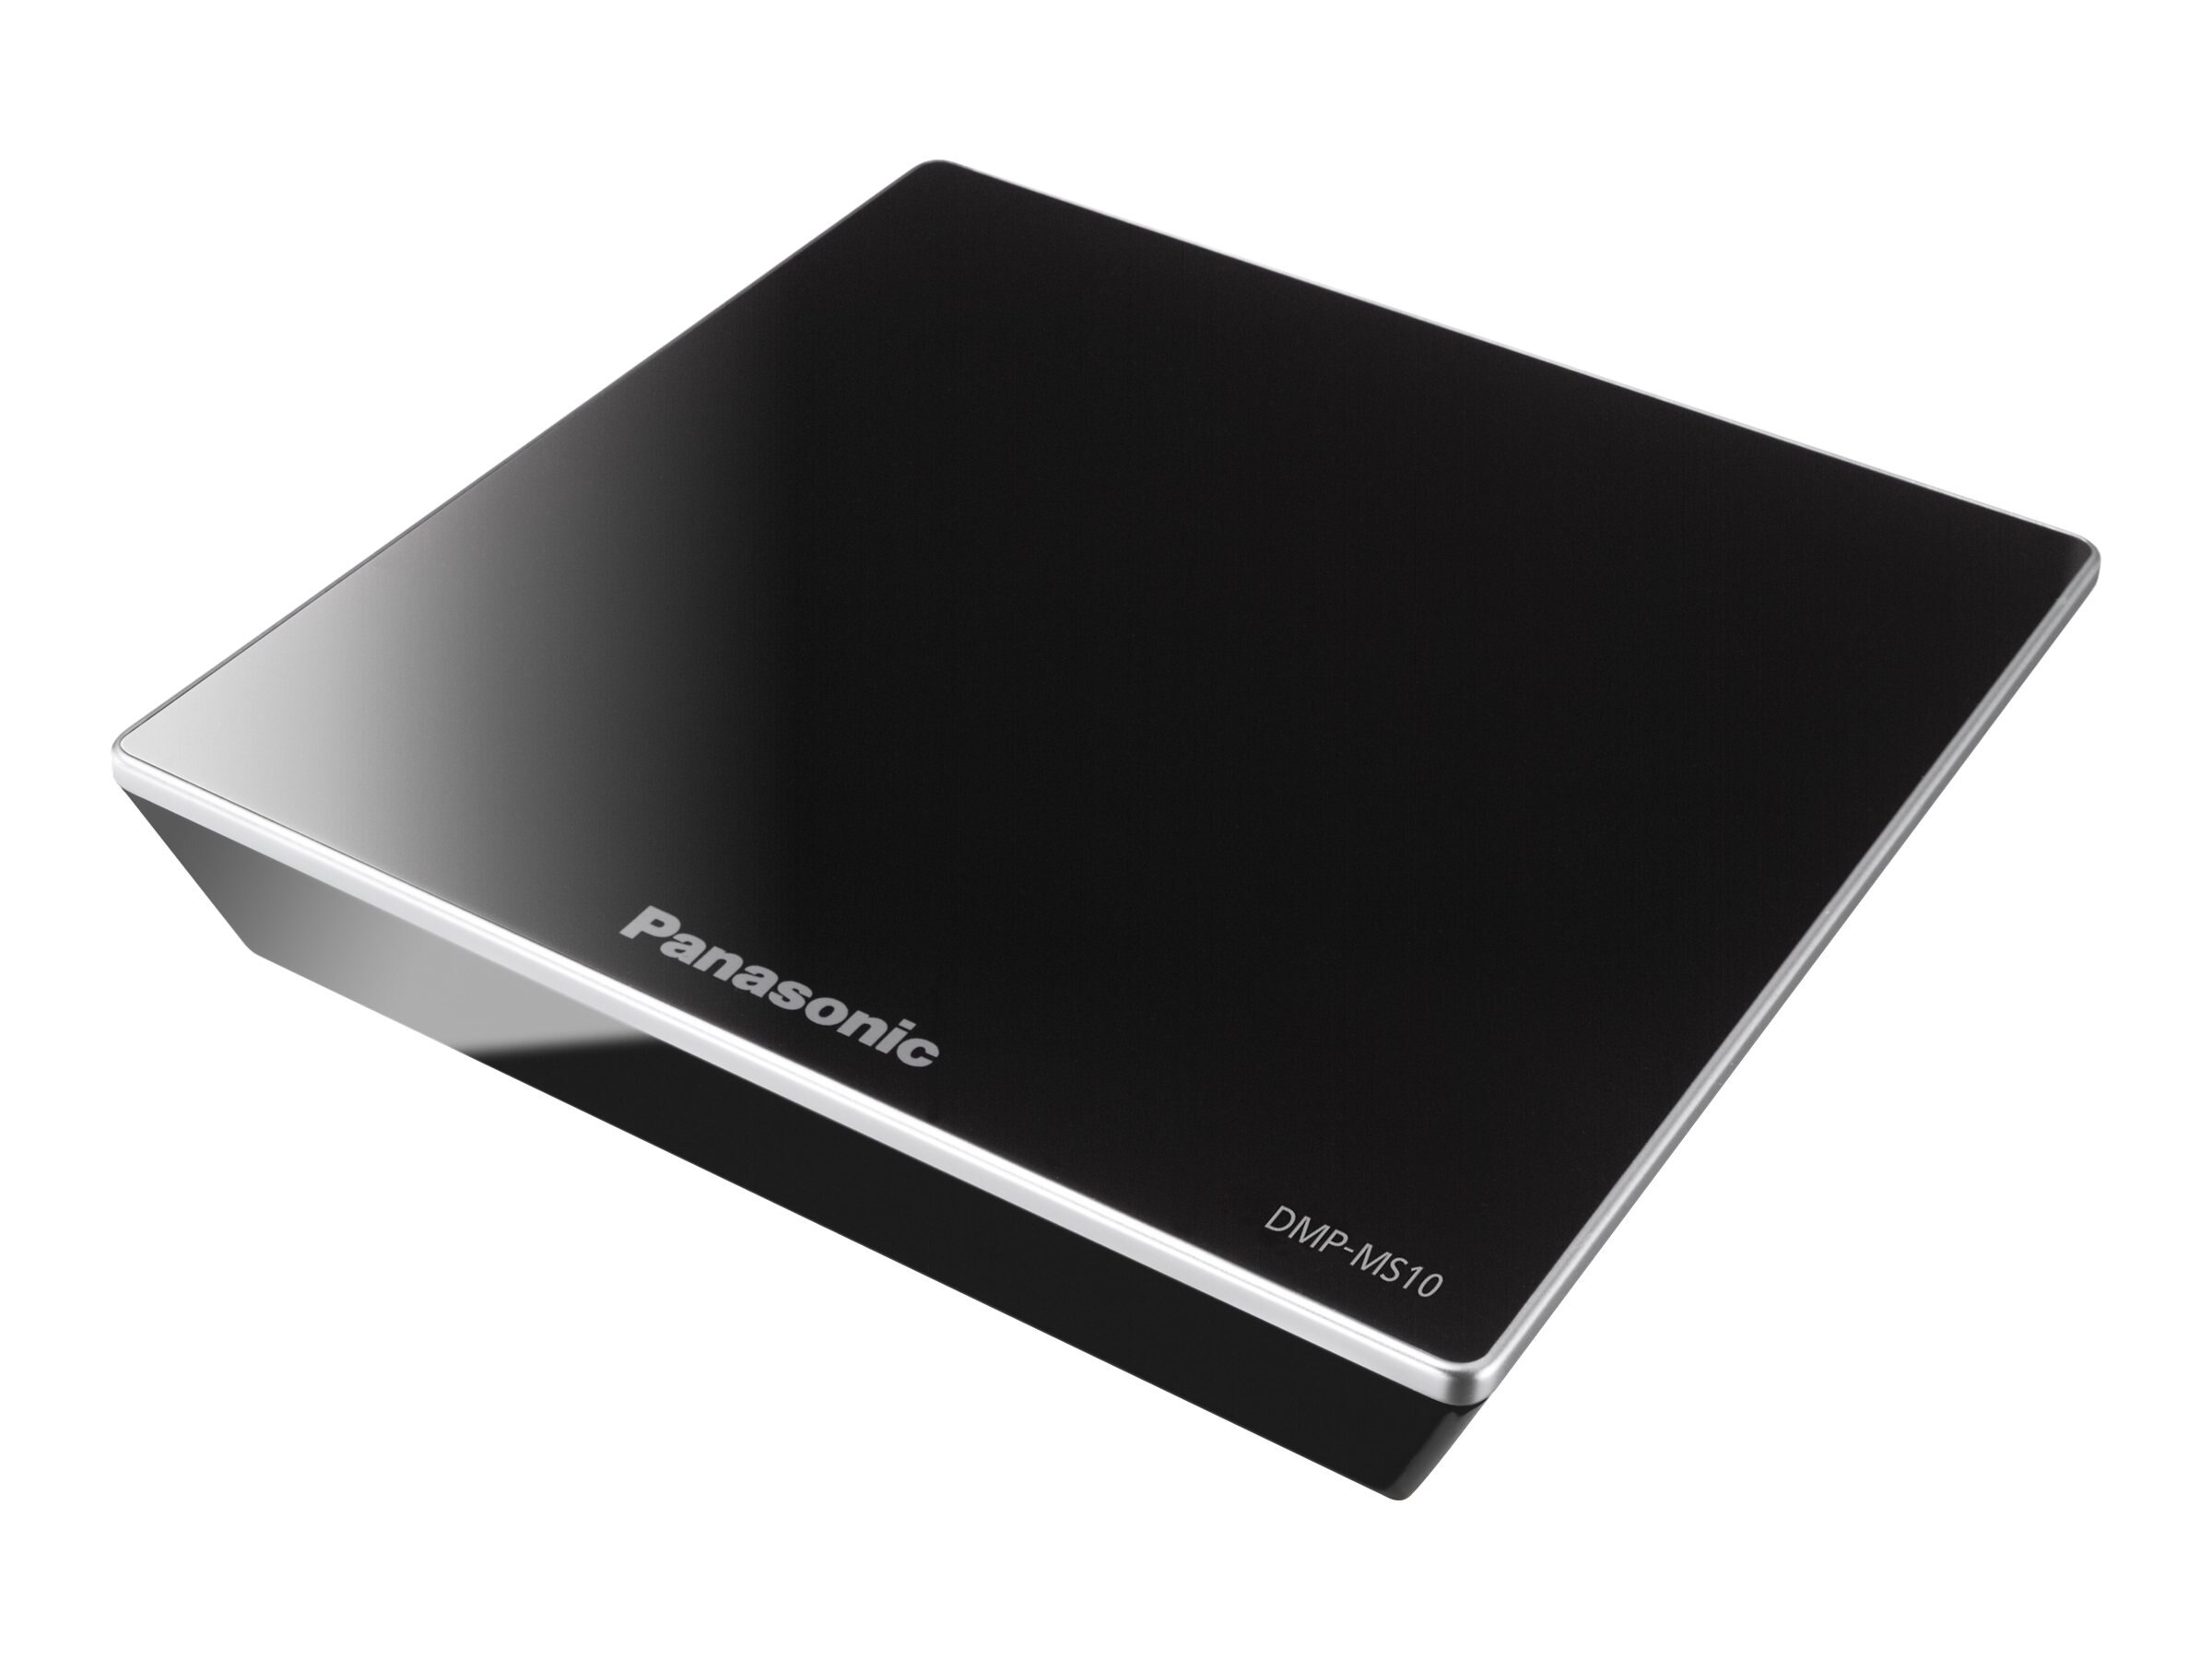 Panasonic DMP-MS10 Streaming Media Player